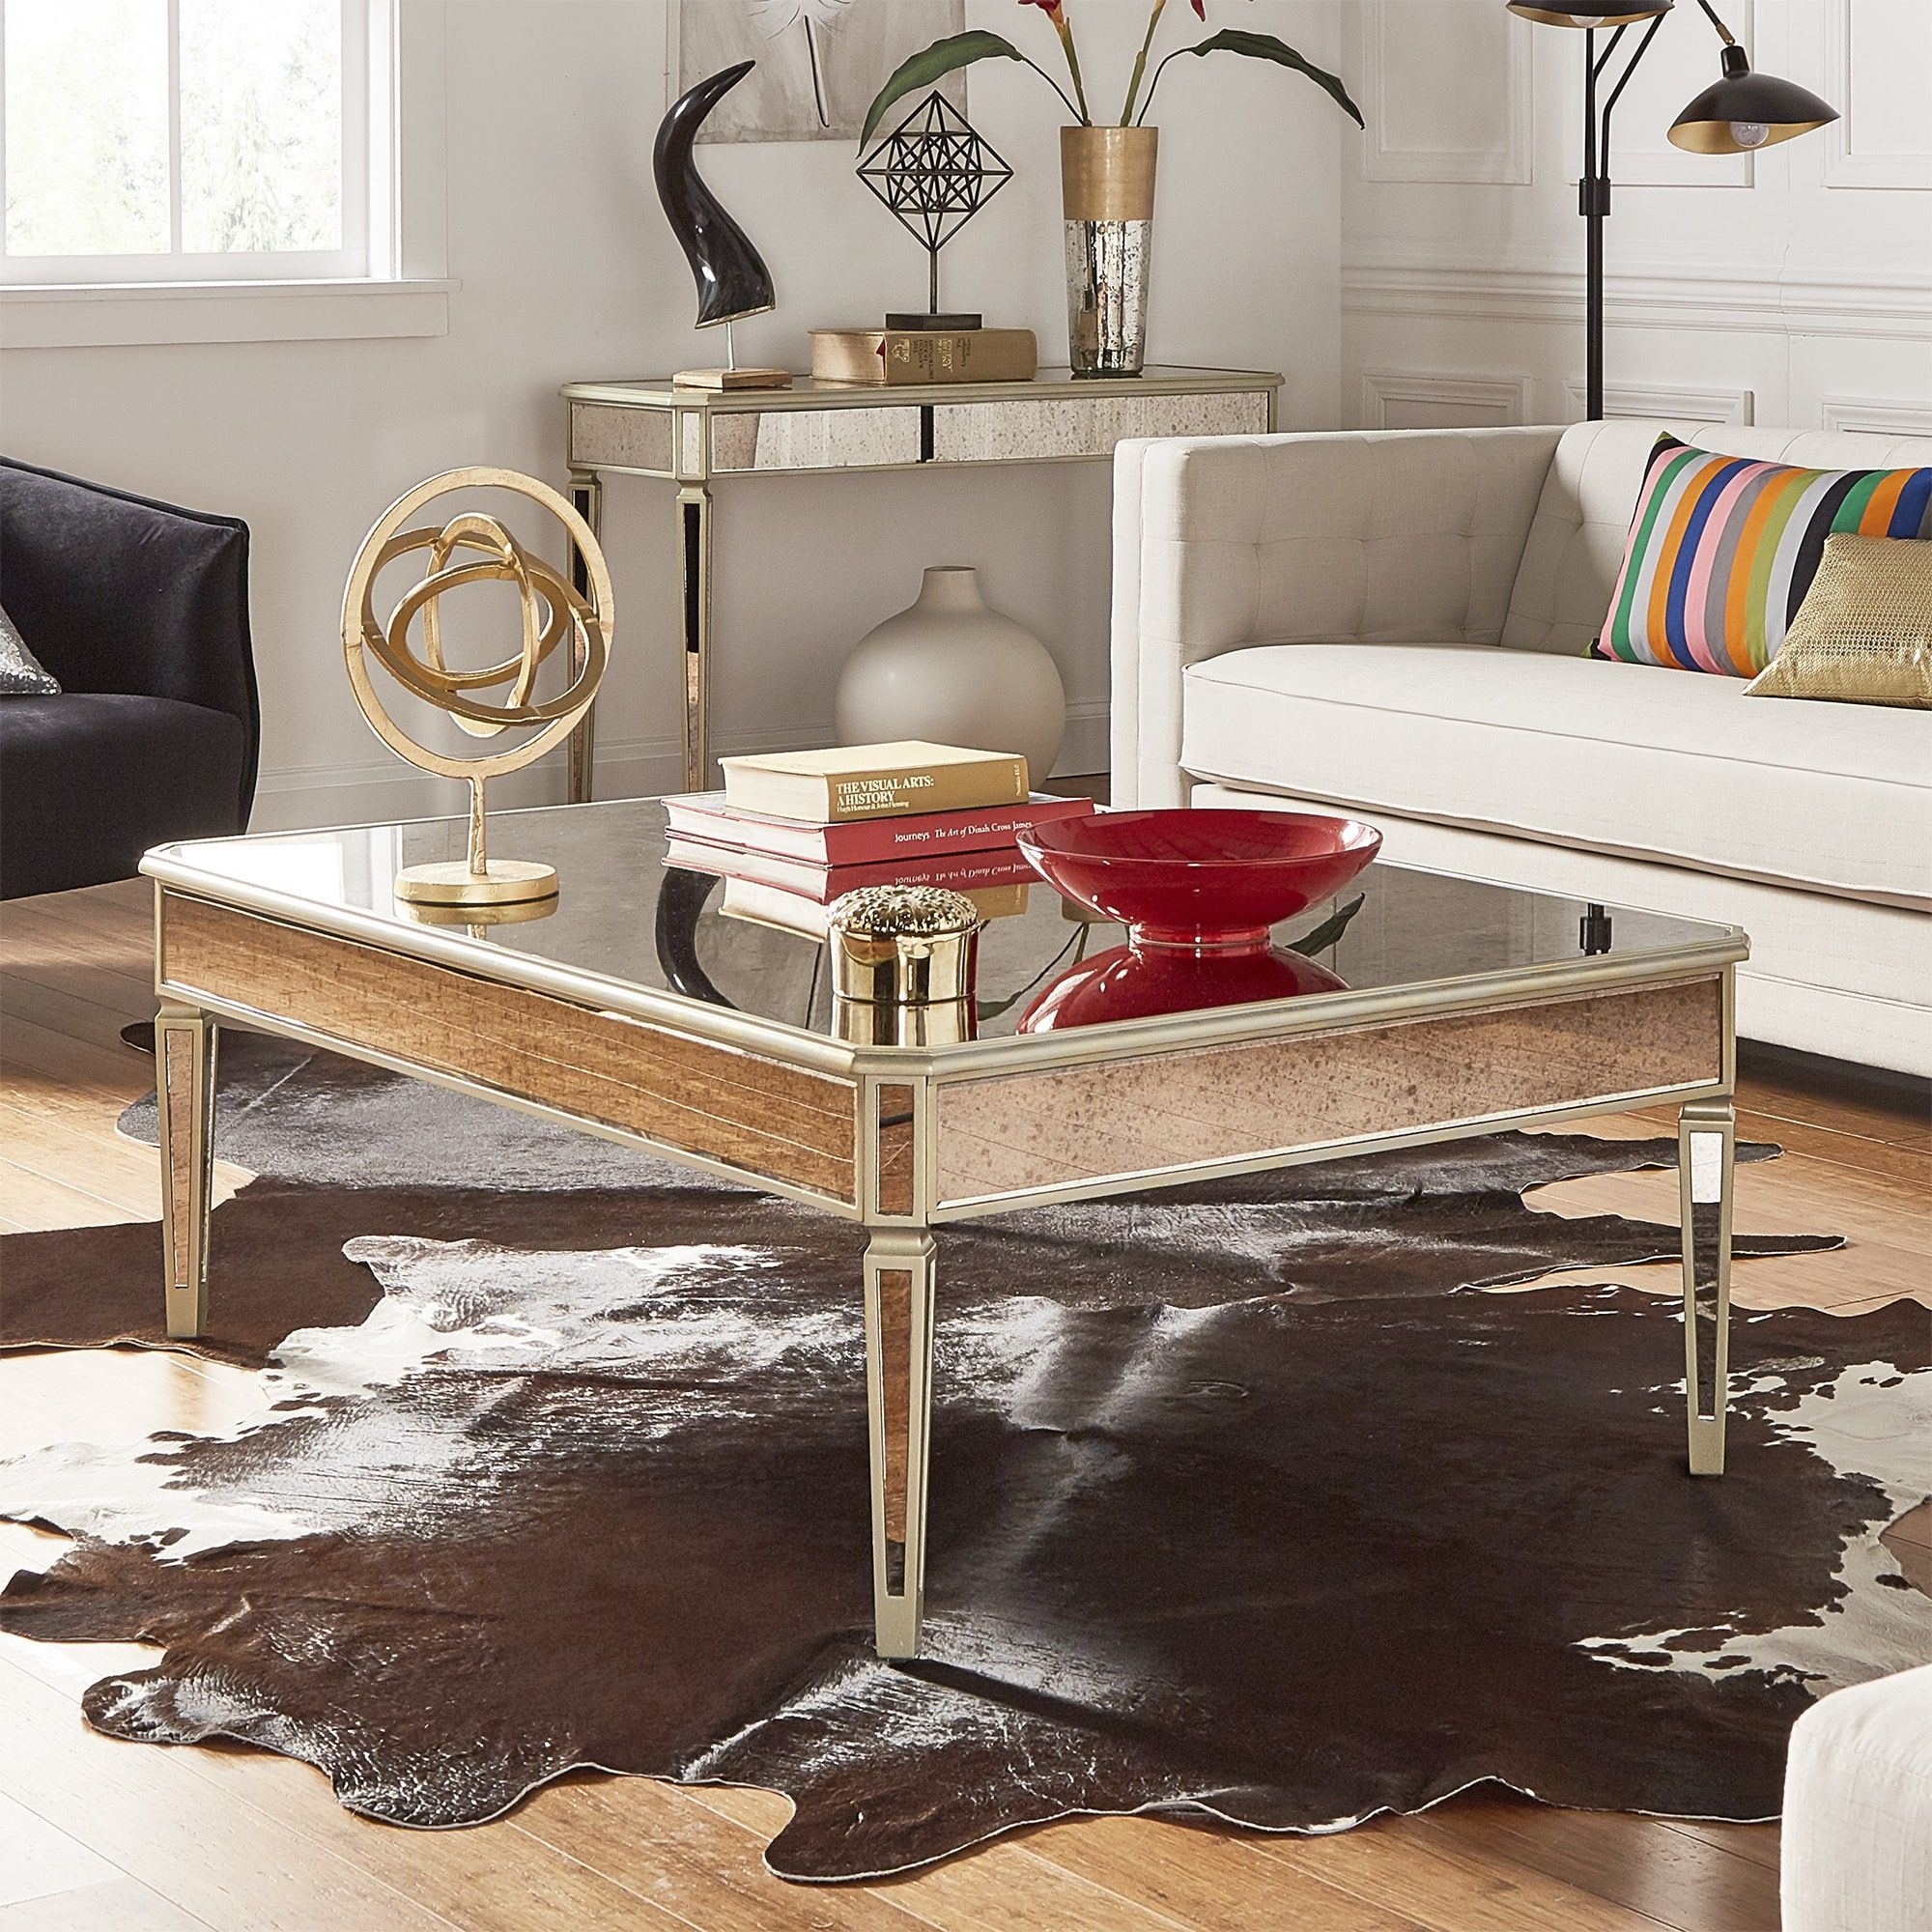 clara antique gold mirrored accent tables inspire bold piece table and mirror set coffee end round metal folding patio small glass top vintage sofa pottery barn tripod lamp carpet